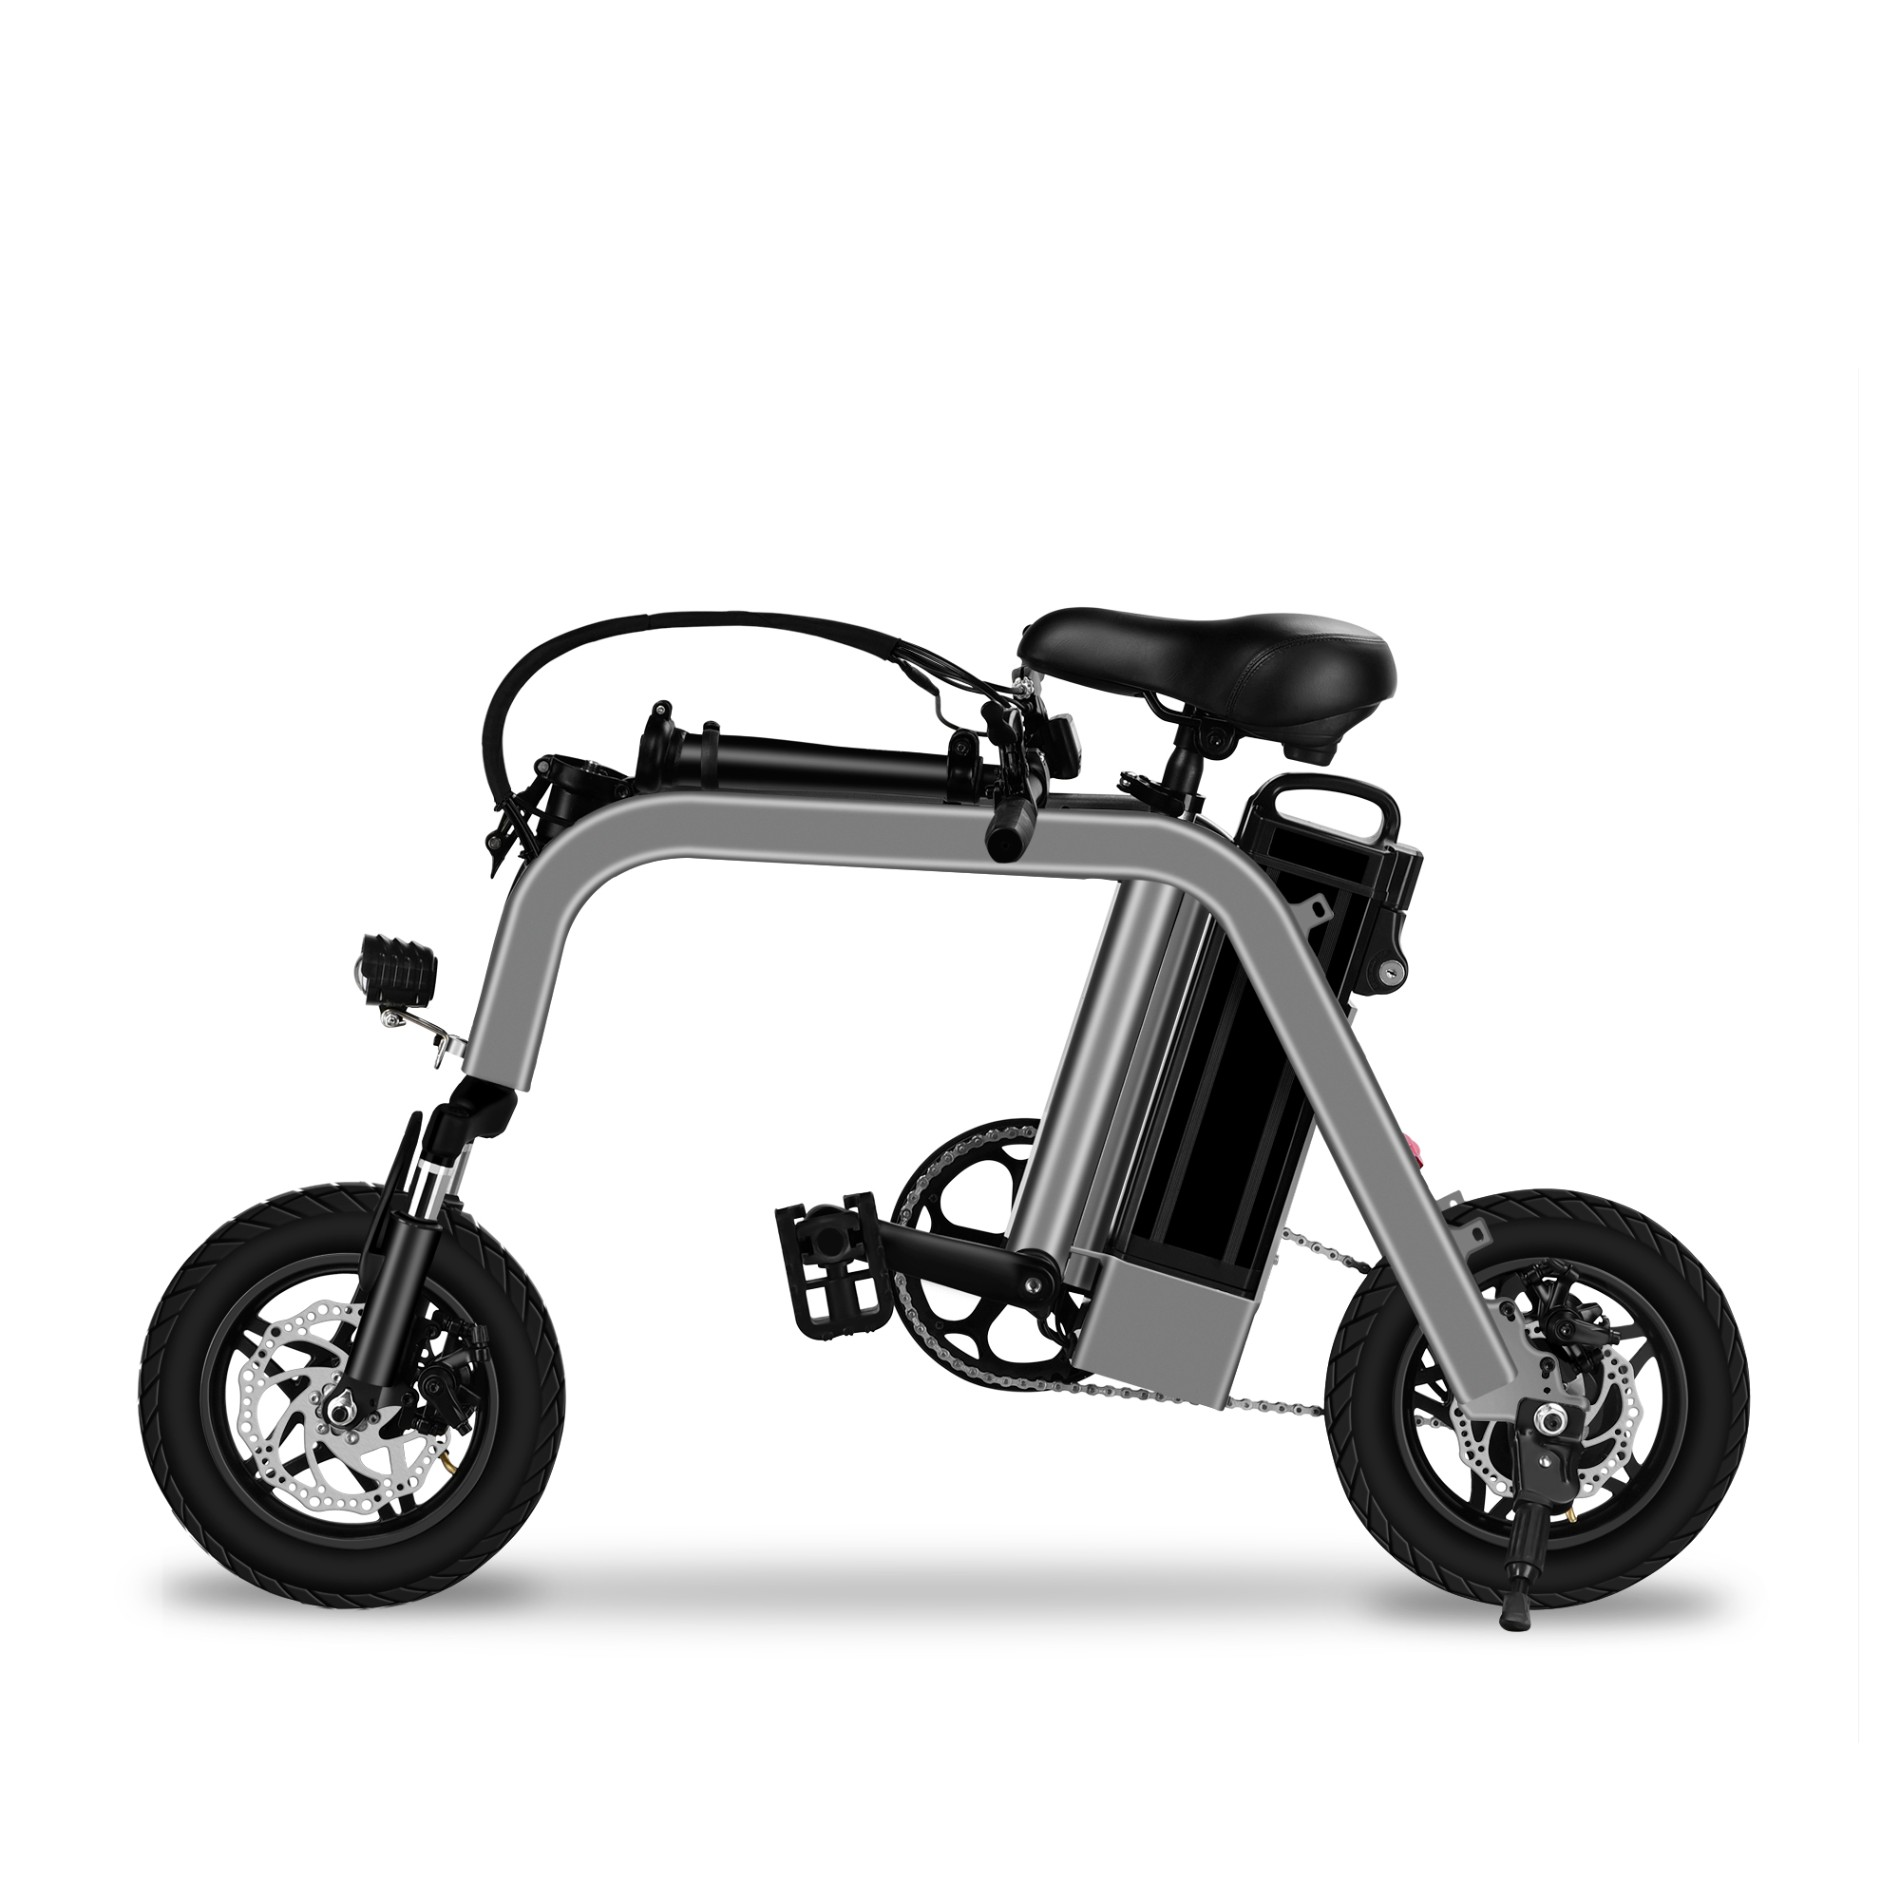 Folding Electric Bicycle With Pet Basket 12 Inch Electric Bike Parent Child E Bicycle City E Bike Aluminum Alloy Ebike Manufacturers, Folding Electric Bicycle With Pet Basket 12 Inch Electric Bike Parent Child E Bicycle City E Bike Aluminum Alloy Ebike Factory, Supply Folding Electric Bicycle With Pet Basket 12 Inch Electric Bike Parent Child E Bicycle City E Bike Aluminum Alloy Ebike